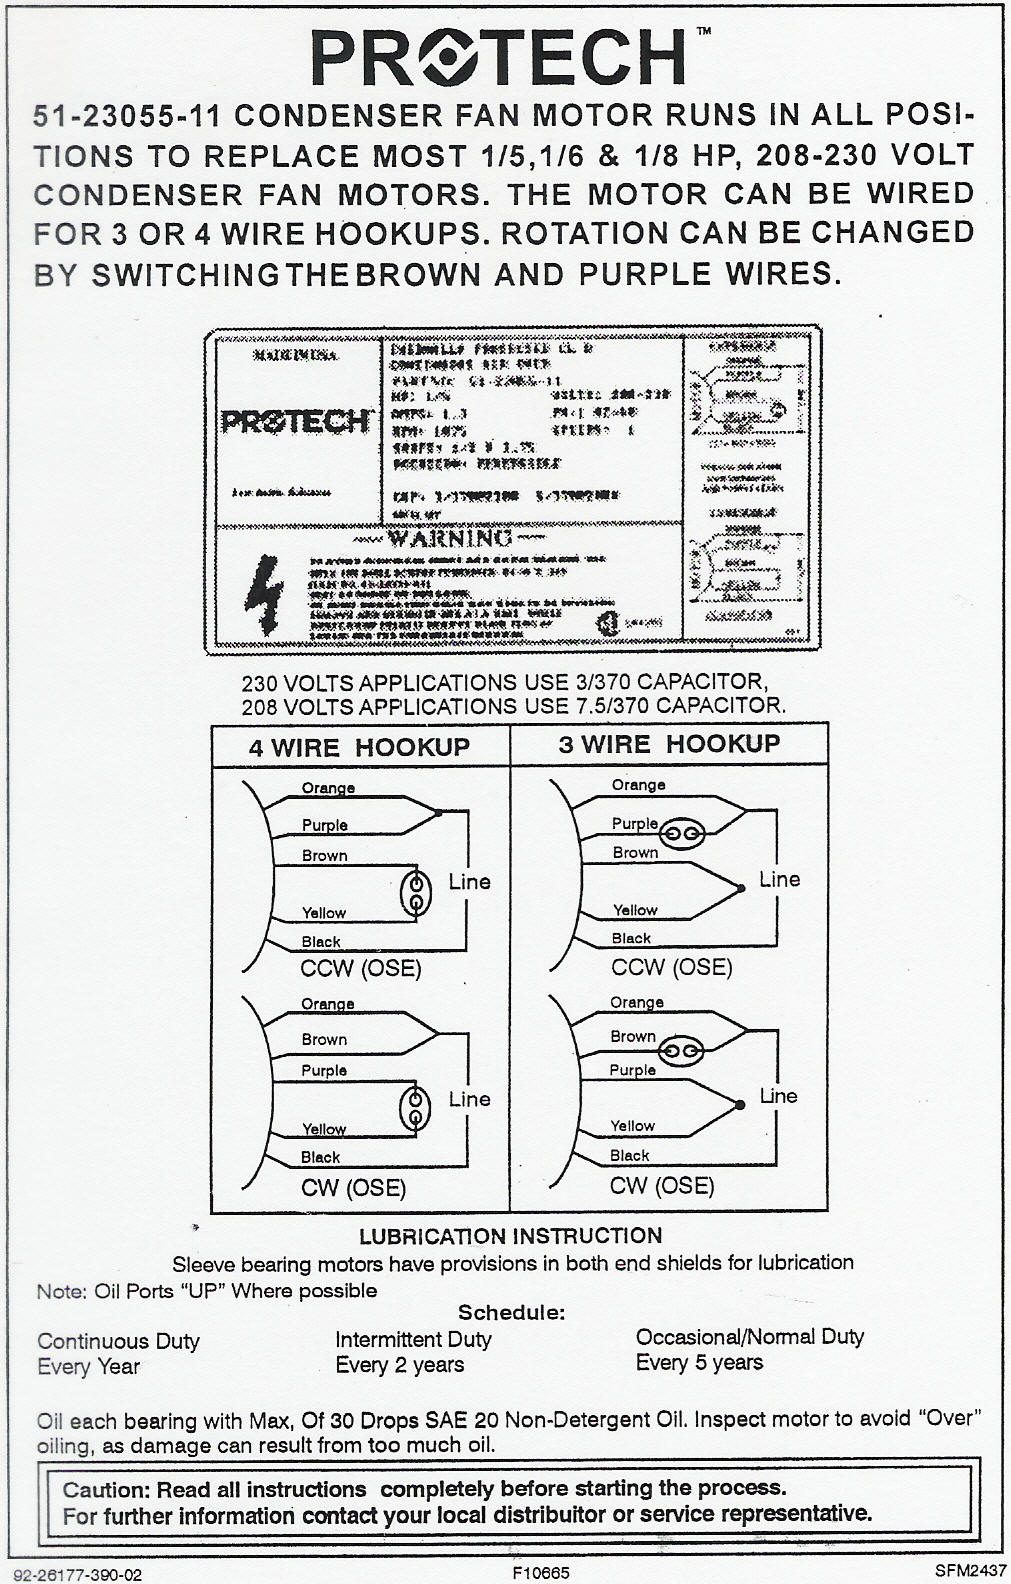 51 23055 11 wiring diagram rheem ruud condenser fan motor 51 23055 11 wiring diagram hvac fan motor wiring diagram at soozxer.org